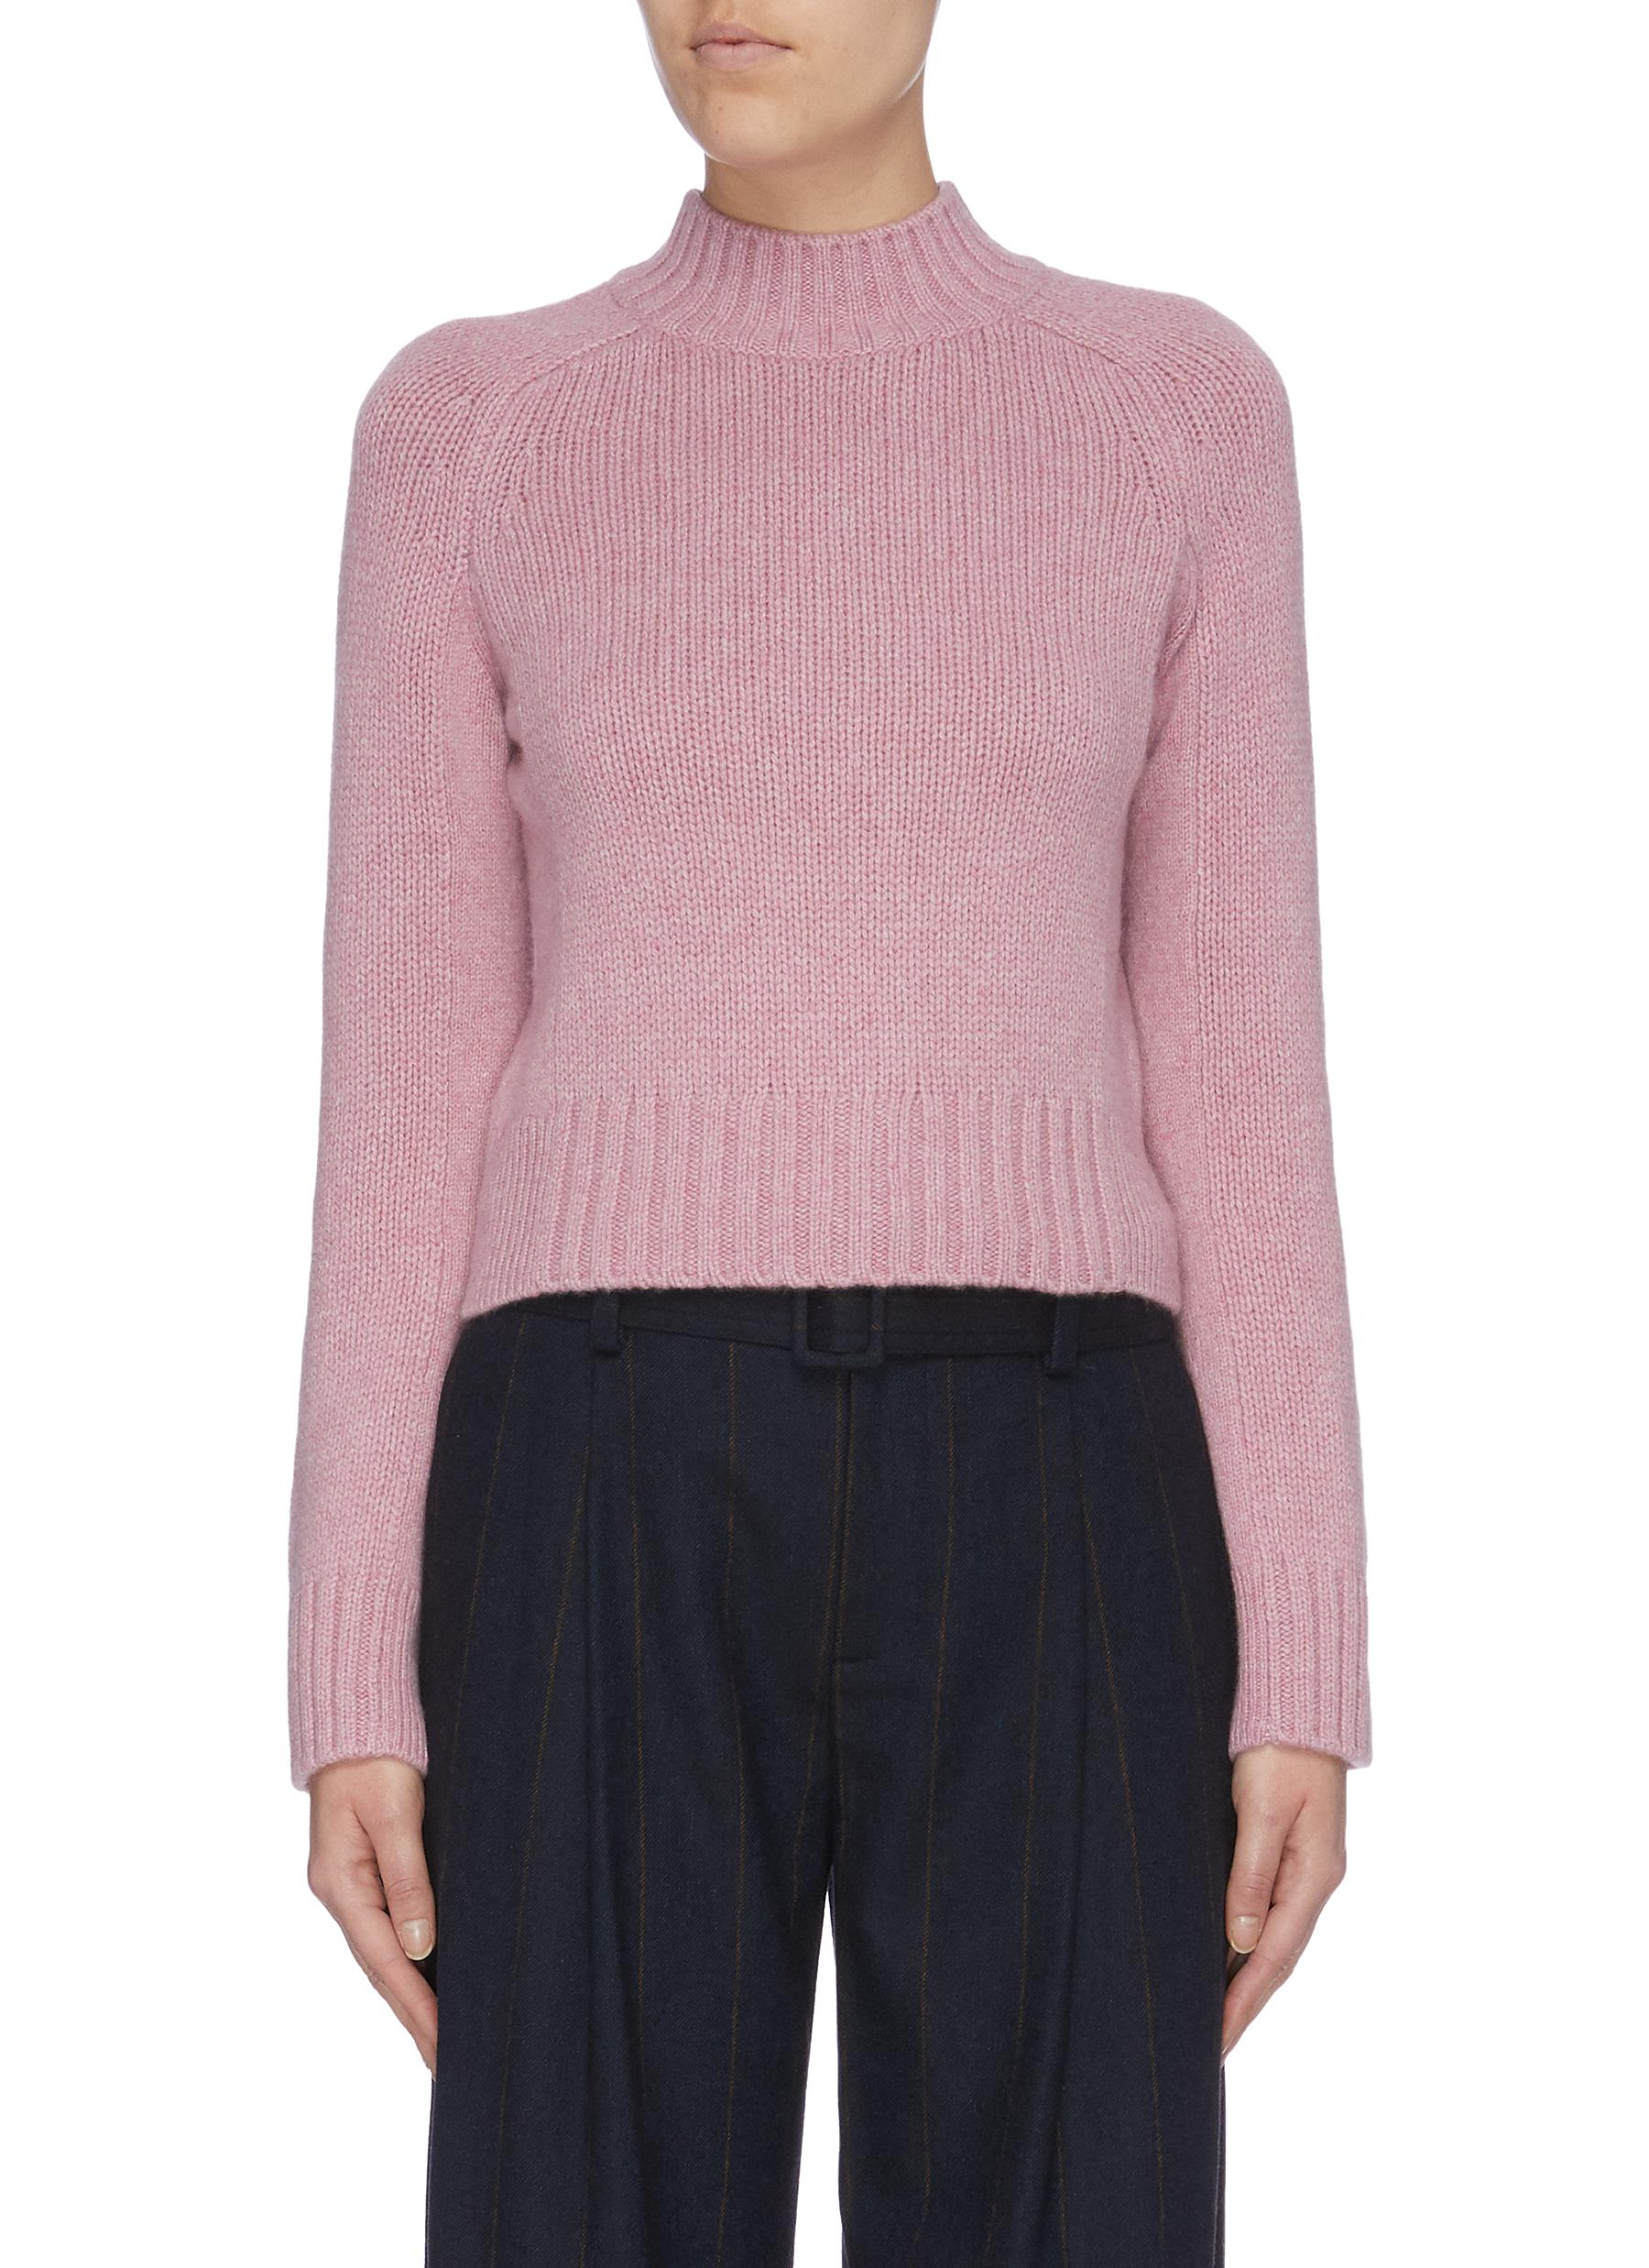 Cashmere mock neck sweater by Vince